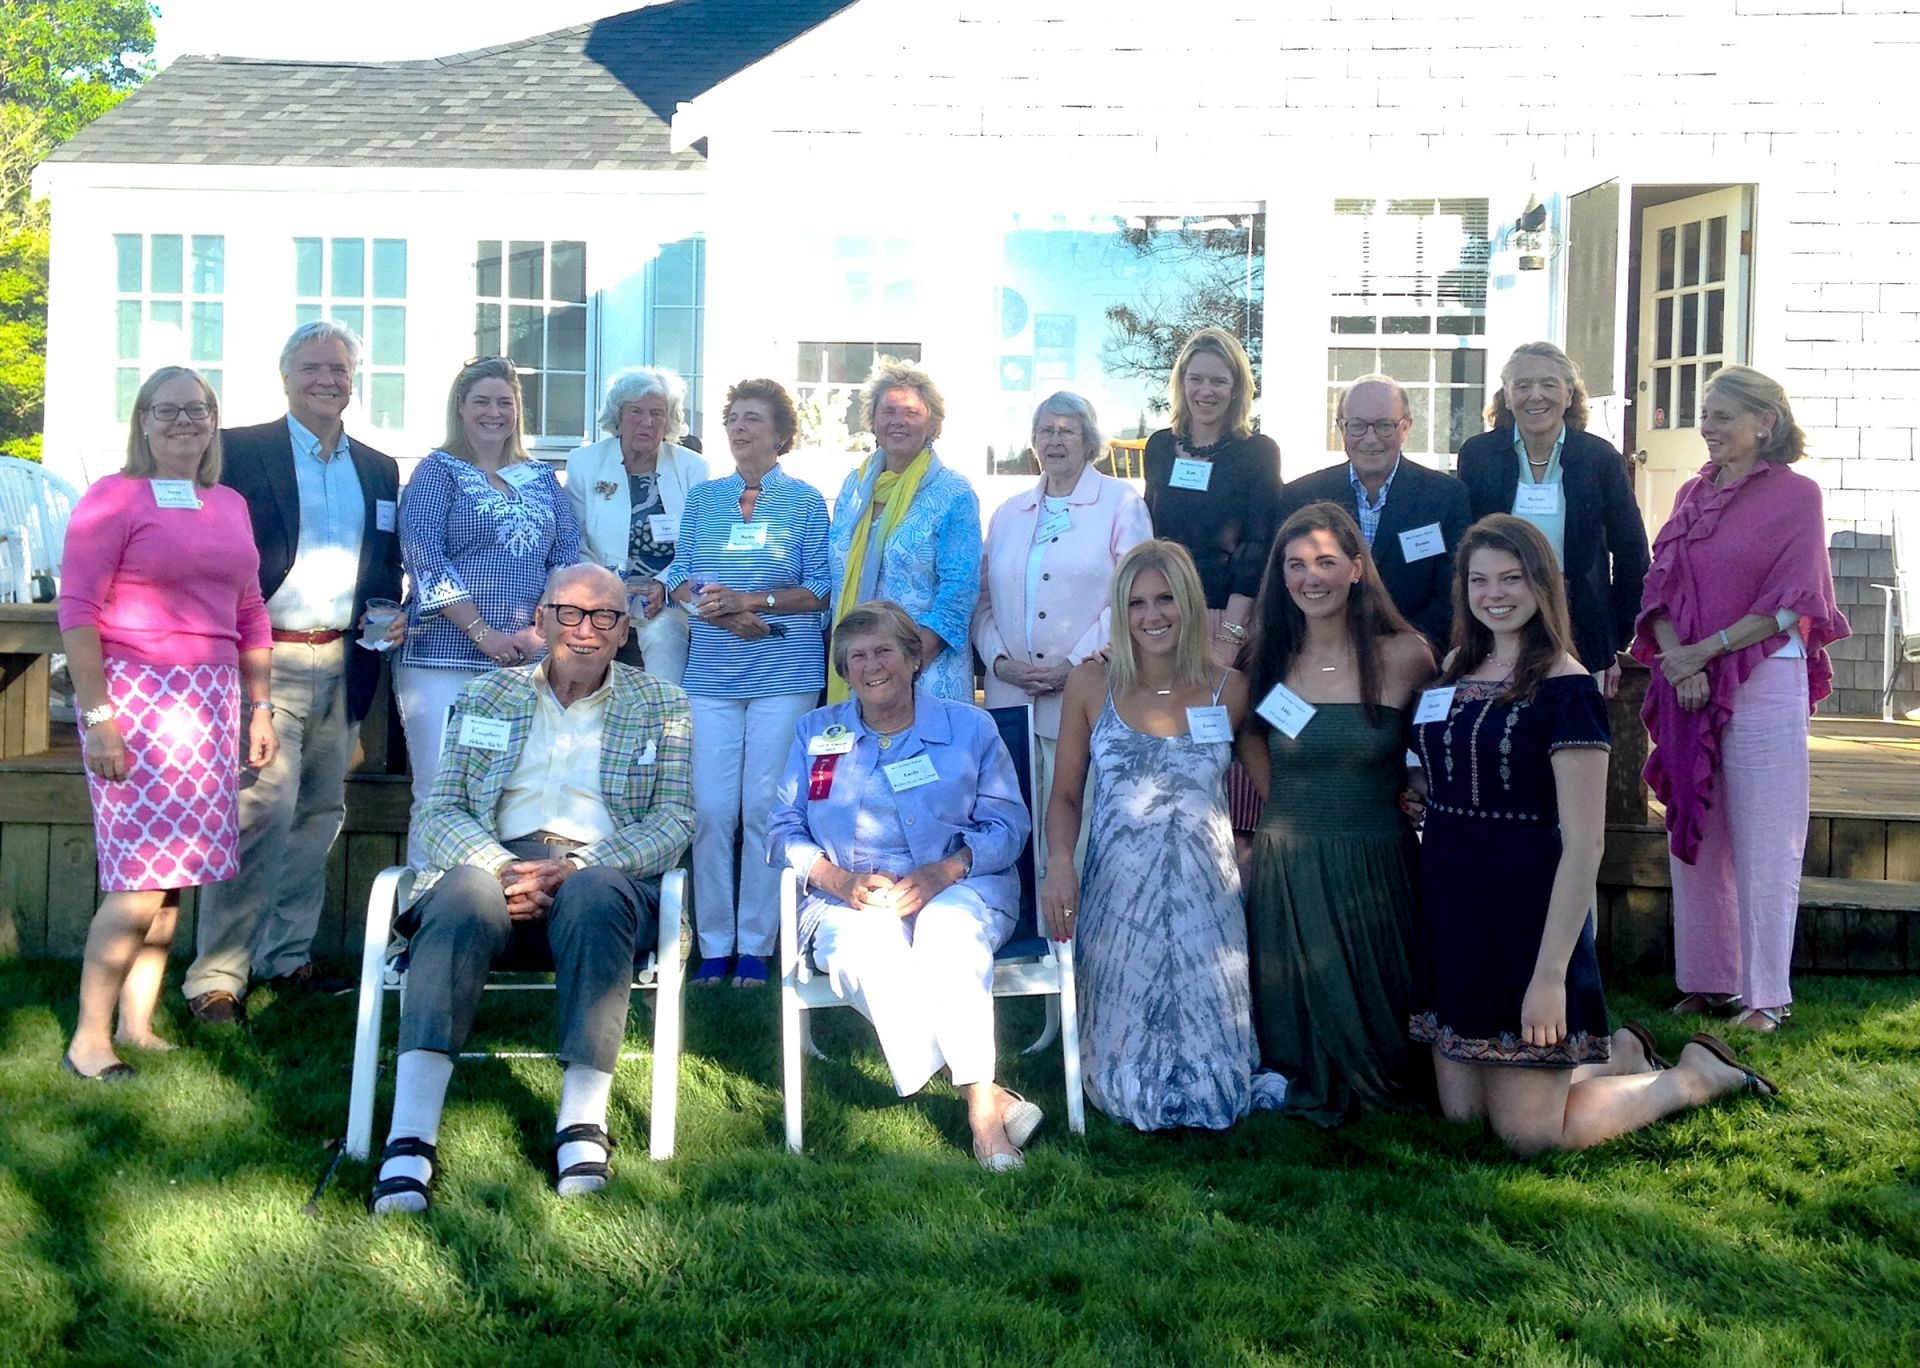 July 26, 2017. Reception on Nantucket hosted by Lucile Walker Hays '56, GP'09 with special guest Head of School Dr. Kate Windsor. Seated left-right: Kingston Fletcher; Lucile Walker Hays '56, GP'09; Emma Updegrave '17; Abby O'Connell '17; Merritt Gibson '17; Standing left-right: Susan Walker P'06, director of gift planning and stewardship; David Walek P'17; Betsy Gibson P'17; Topsy Larsen Simonson '47, P'71; Marilee Matteson P'72, P'79; Lynn Matteson '72; Polly Ruckgaber McLeod '50; Kate Windsor; Dennis Cross; Barbara Mitchell Erskine '48; Anne Frothingham Cross '62